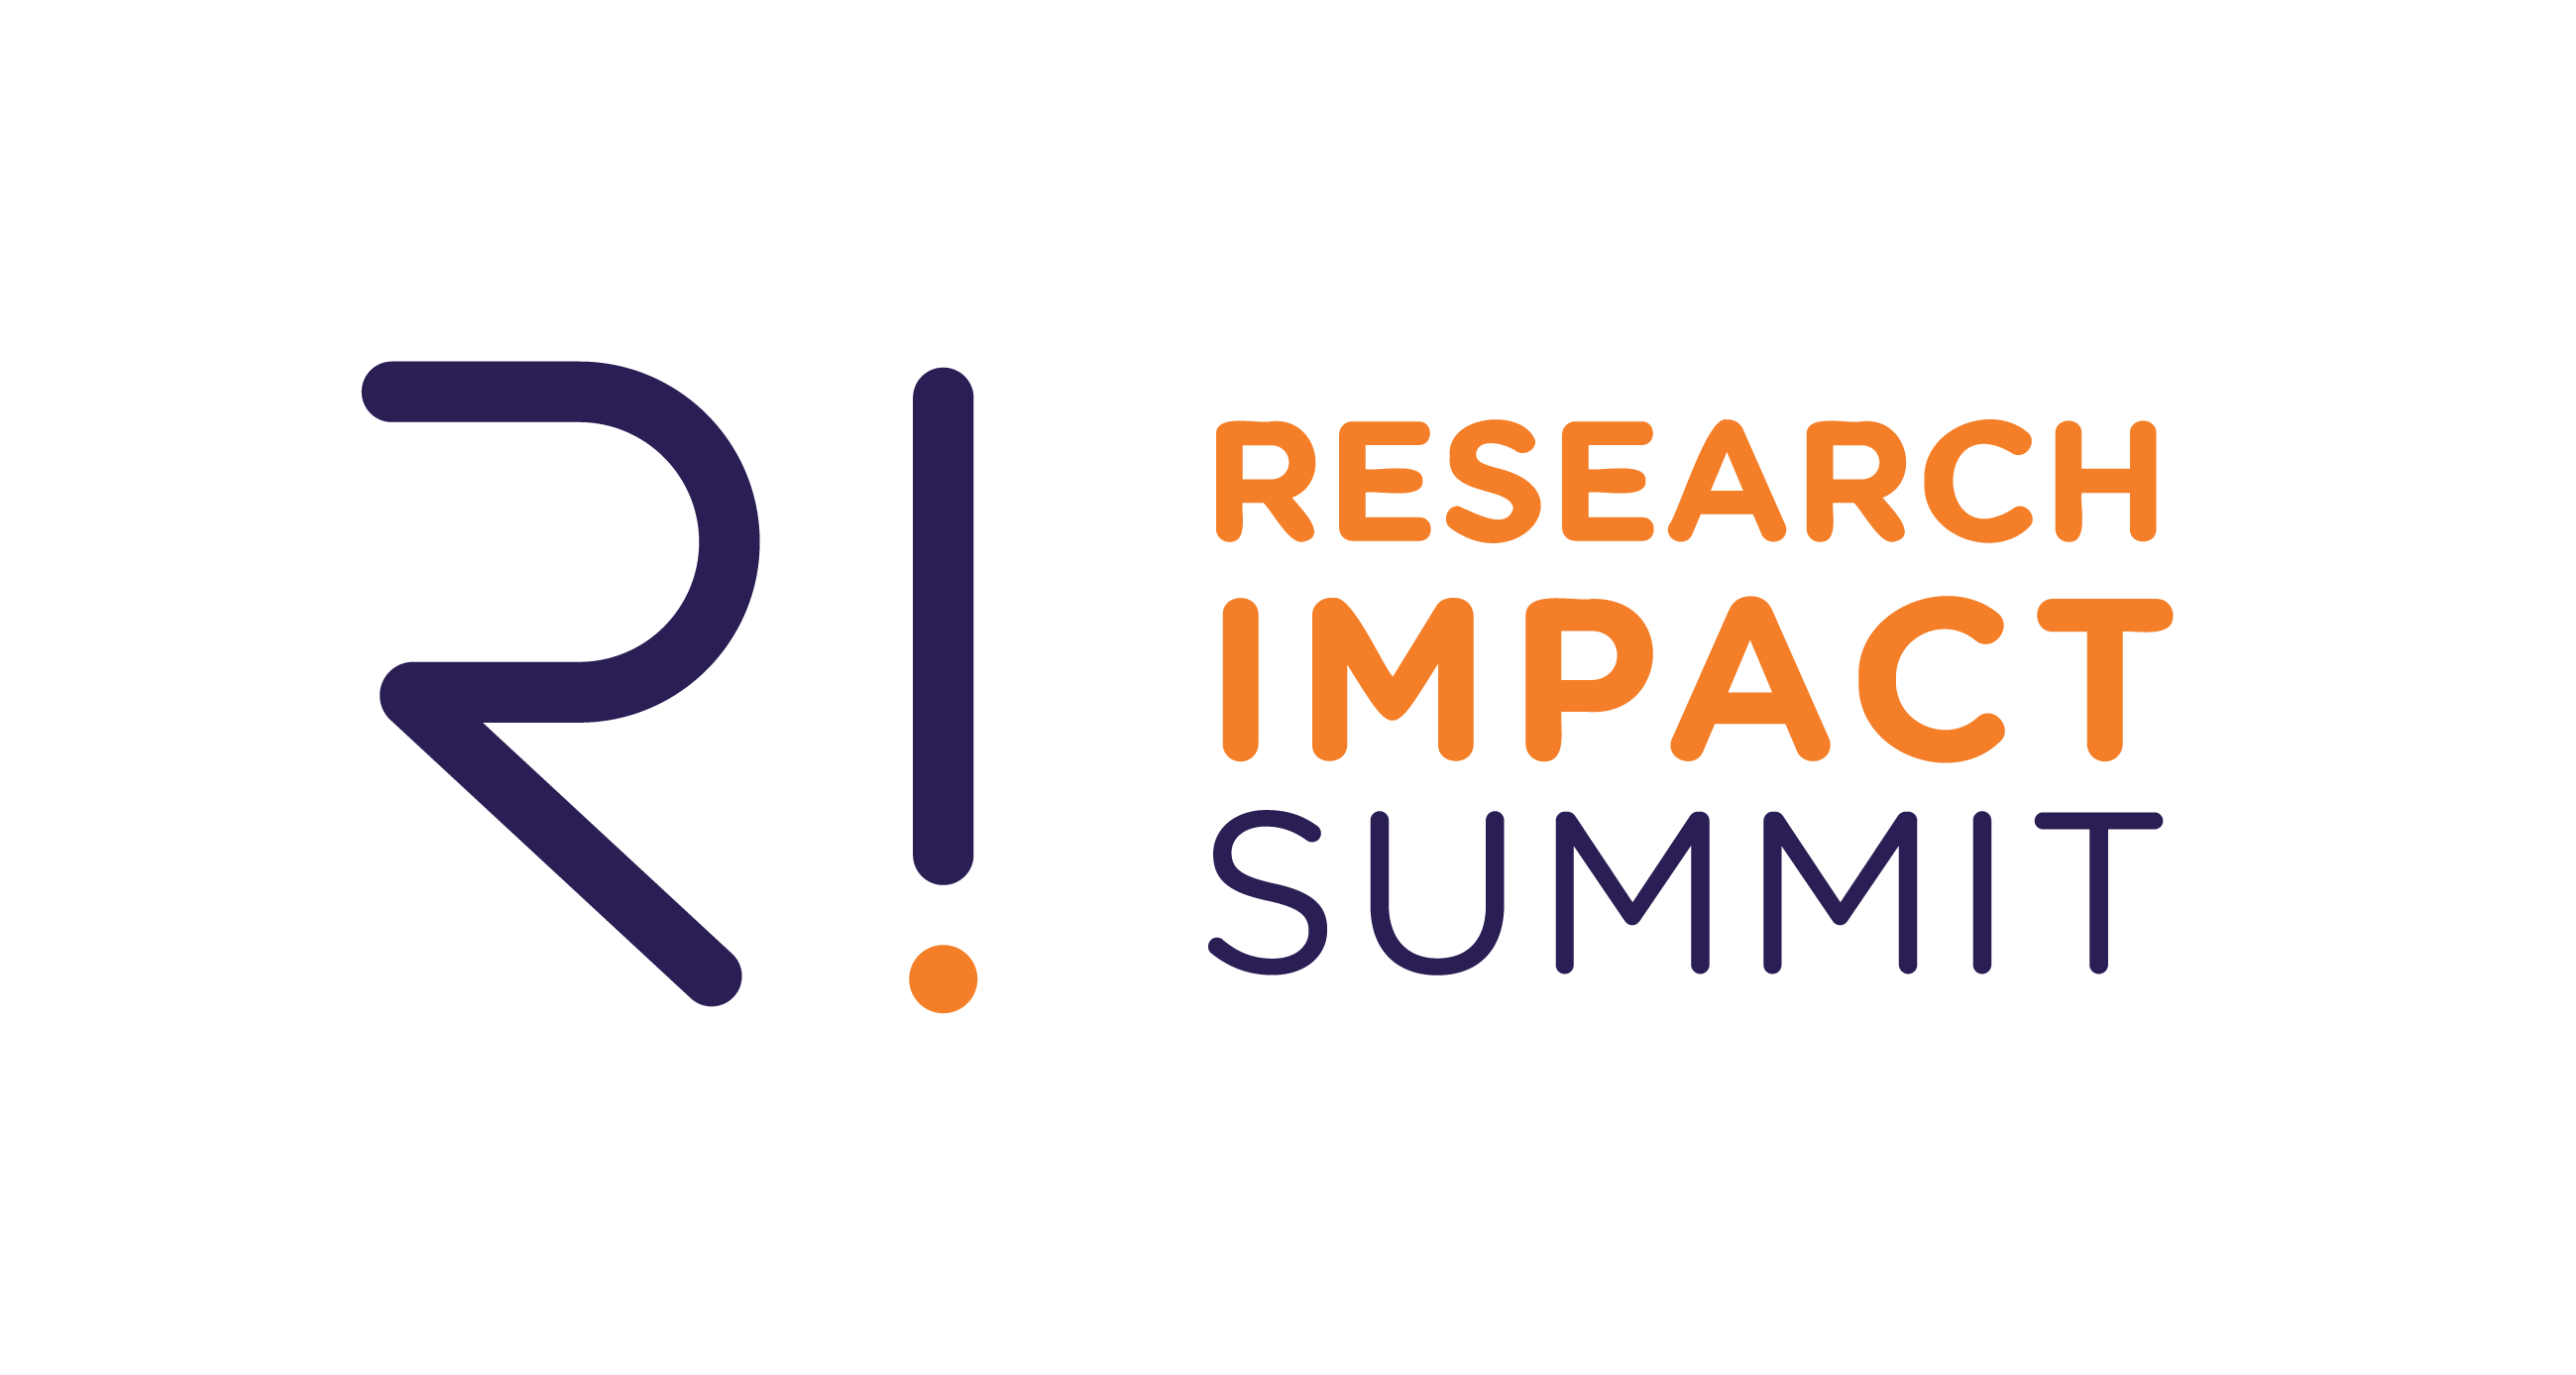 Research Impact Summit